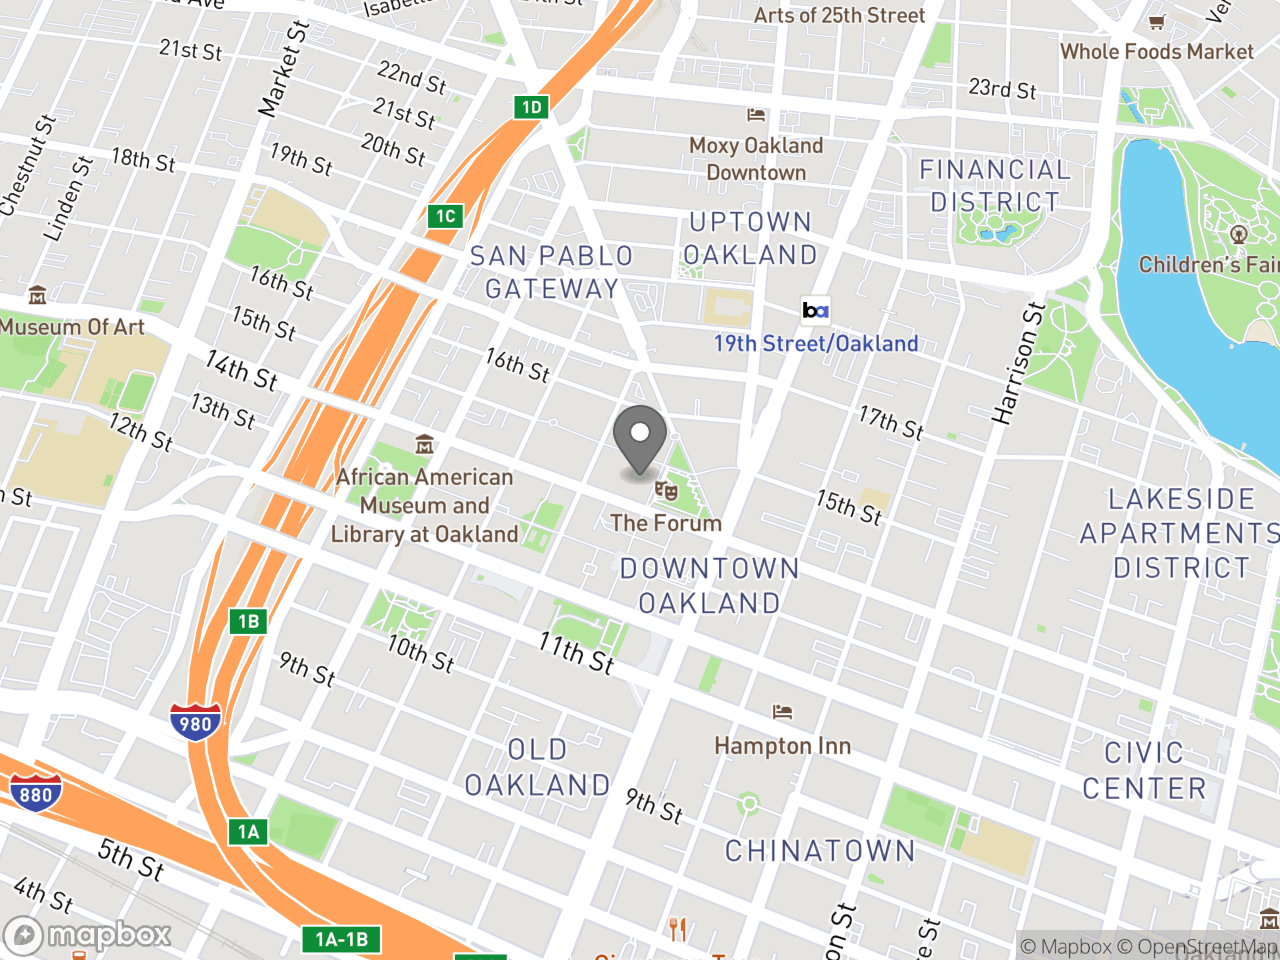 Map location for Alameda County-Oakland Community Action Partnership Administering Board Meeting July 8, 2019, located at 1 Frank H Ogawa Plaza in Oakland, CA 94612